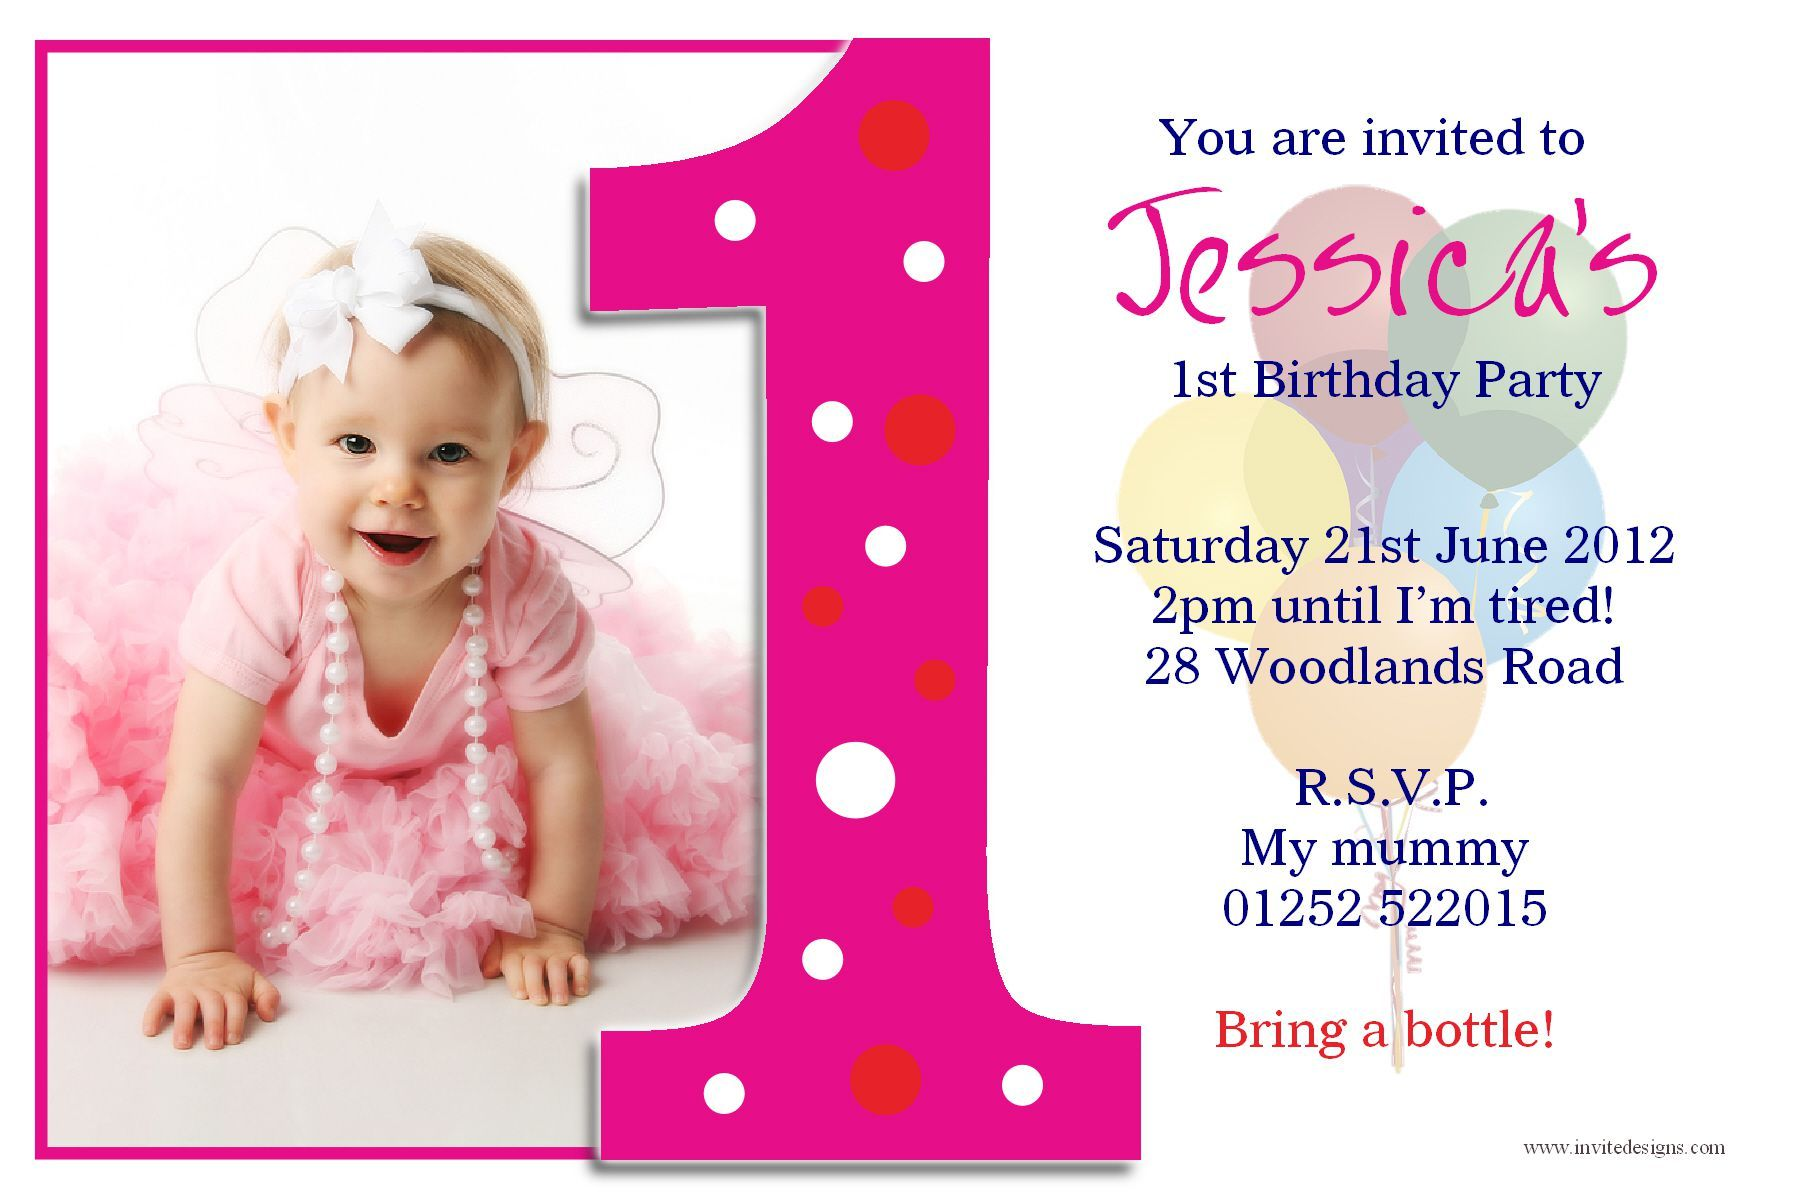 birthday party : First birthday invitations - Card Invitation ...